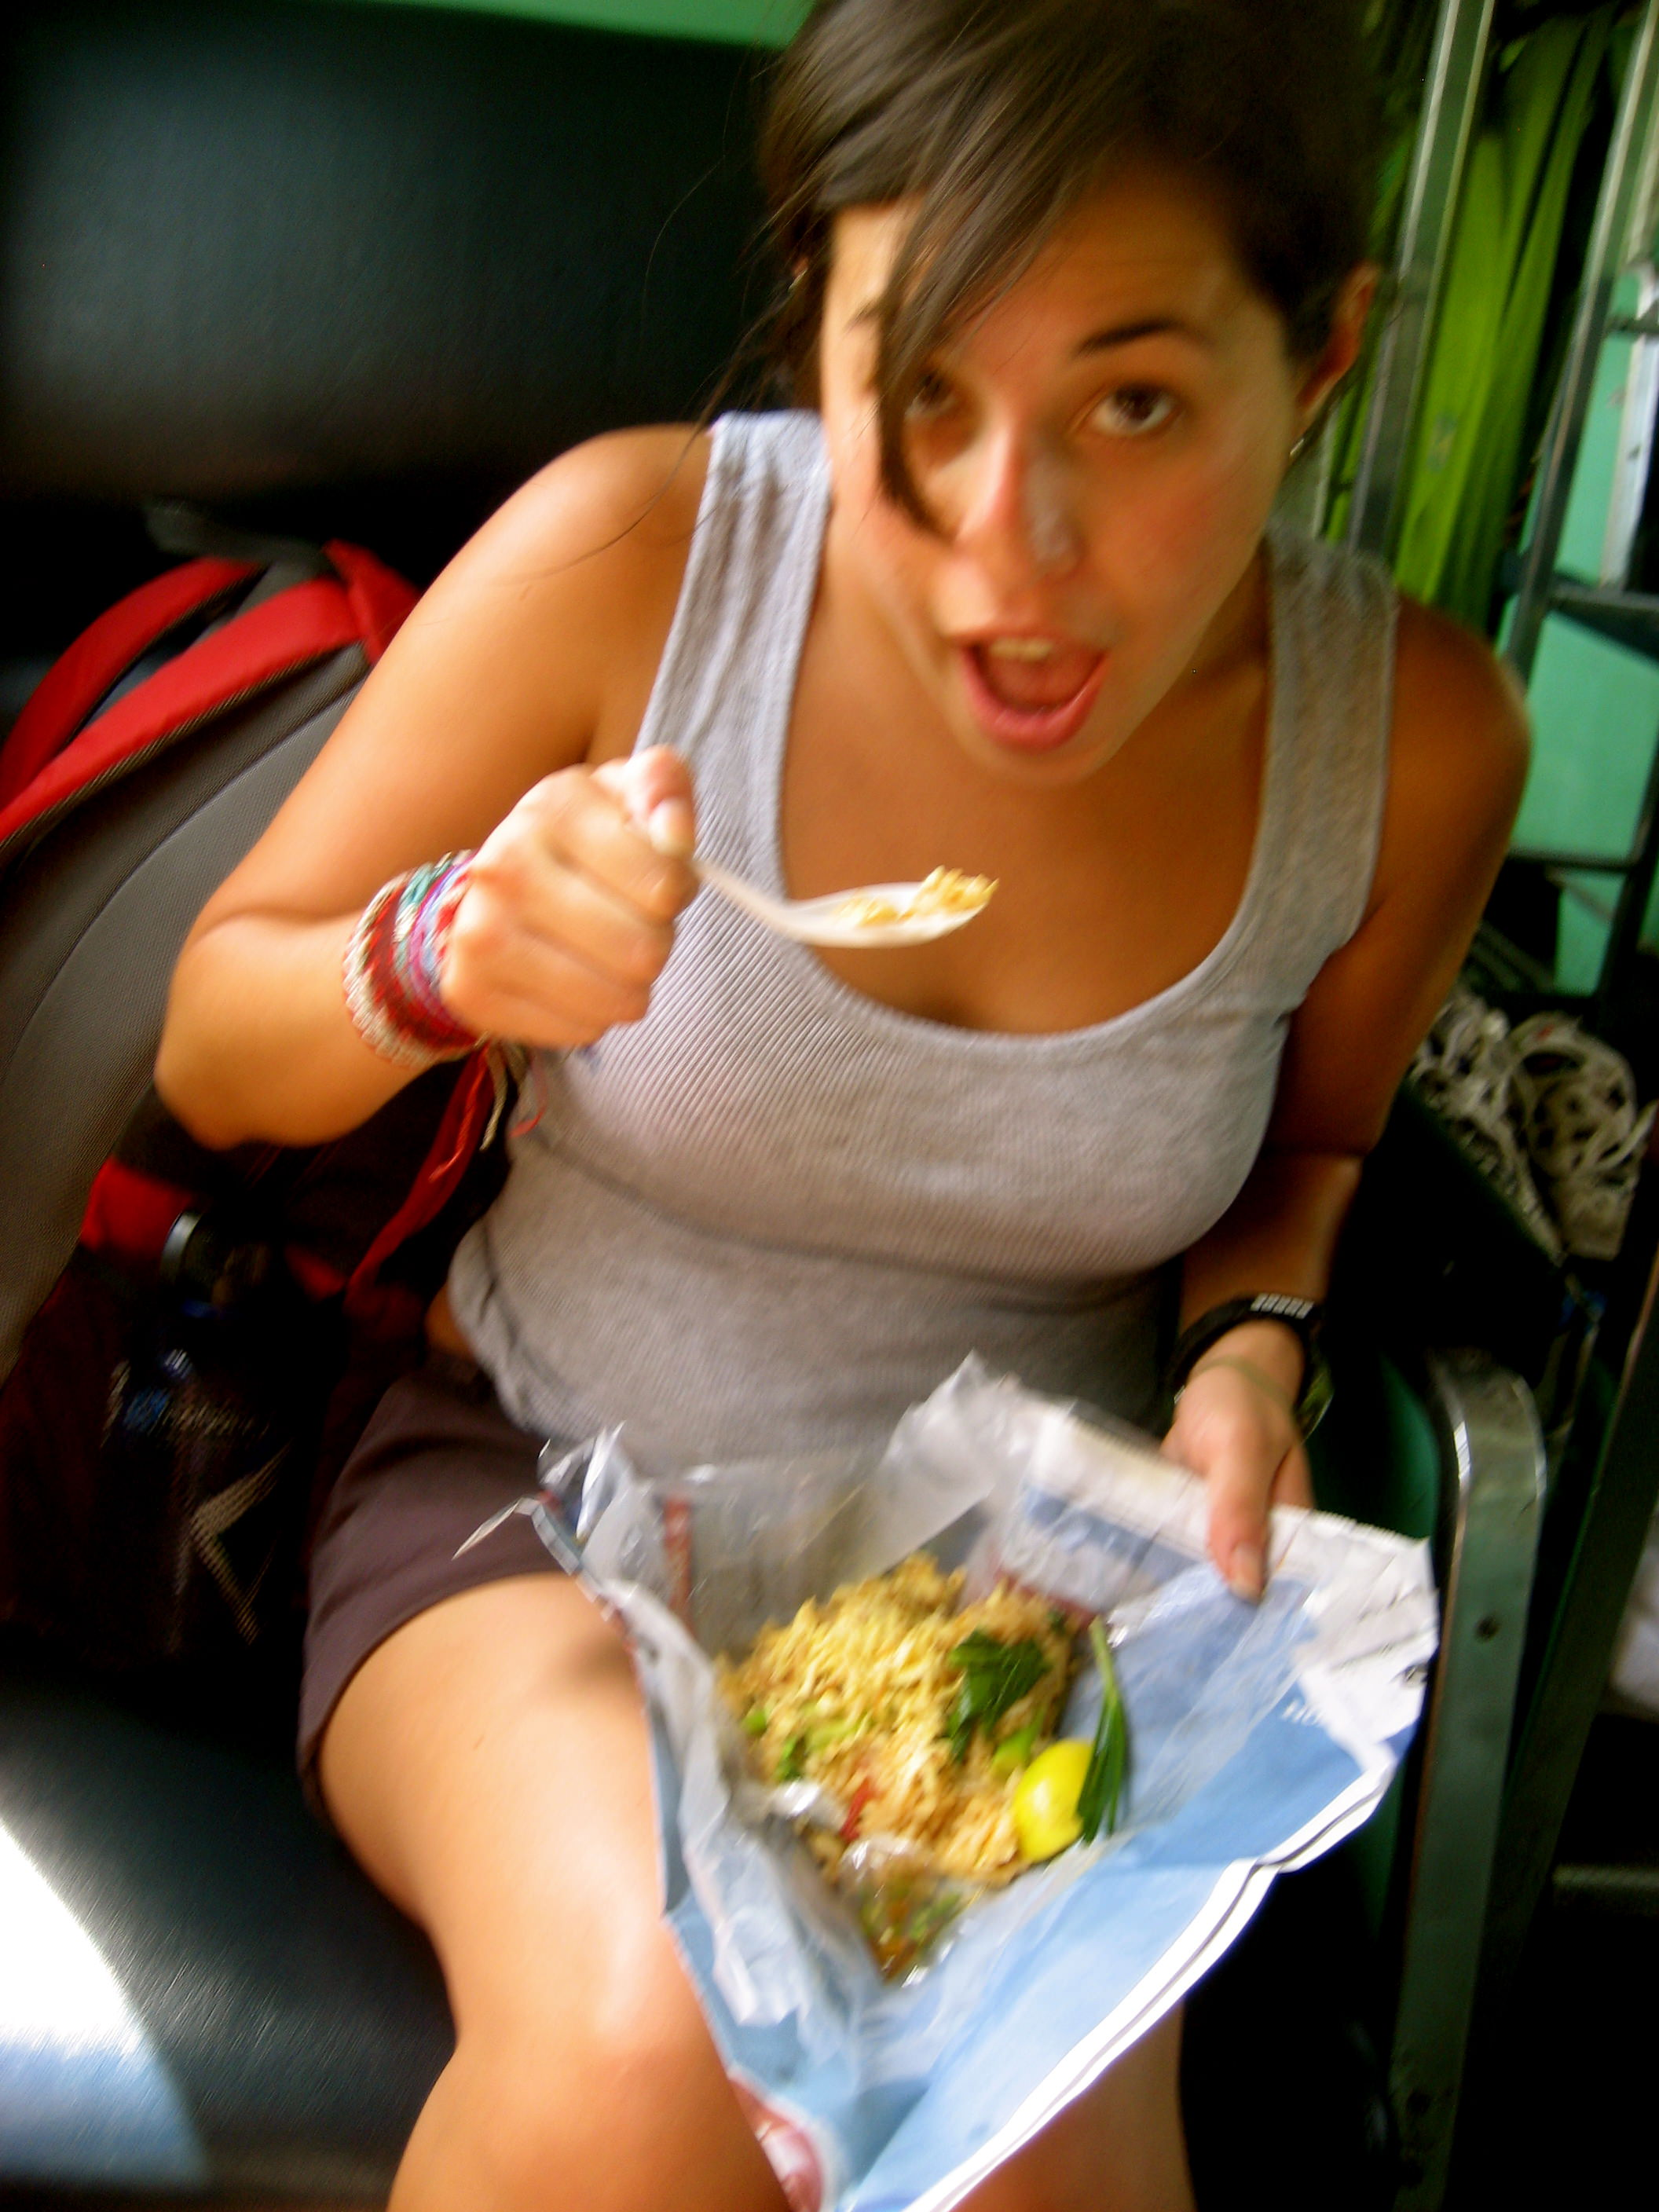 Eating Thai Food From A Banana Leaf